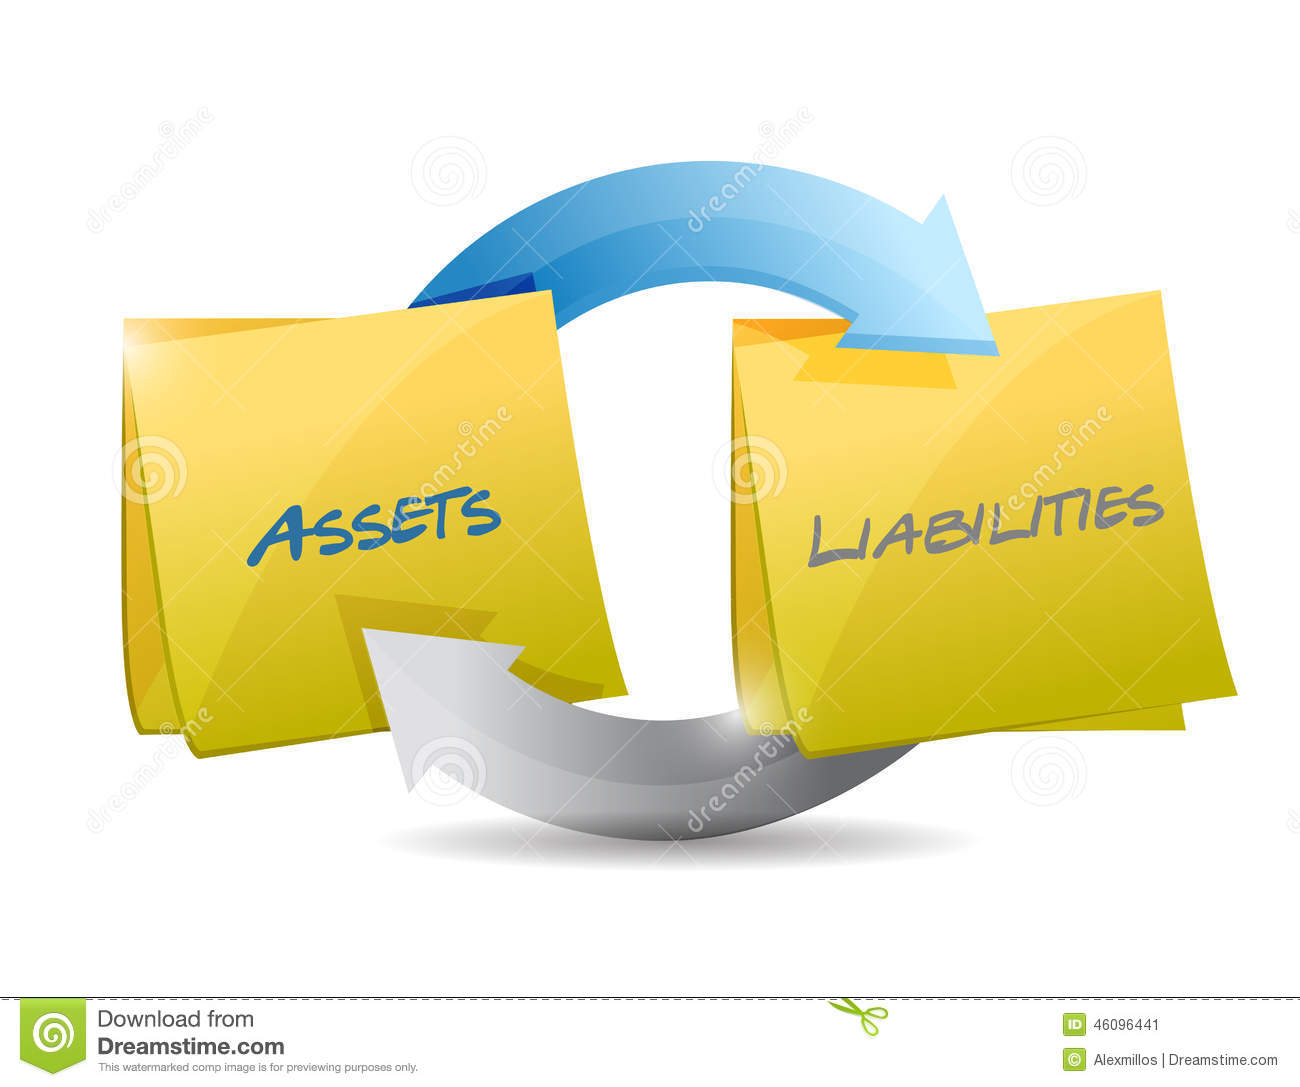 Assets and liabilities clipart.